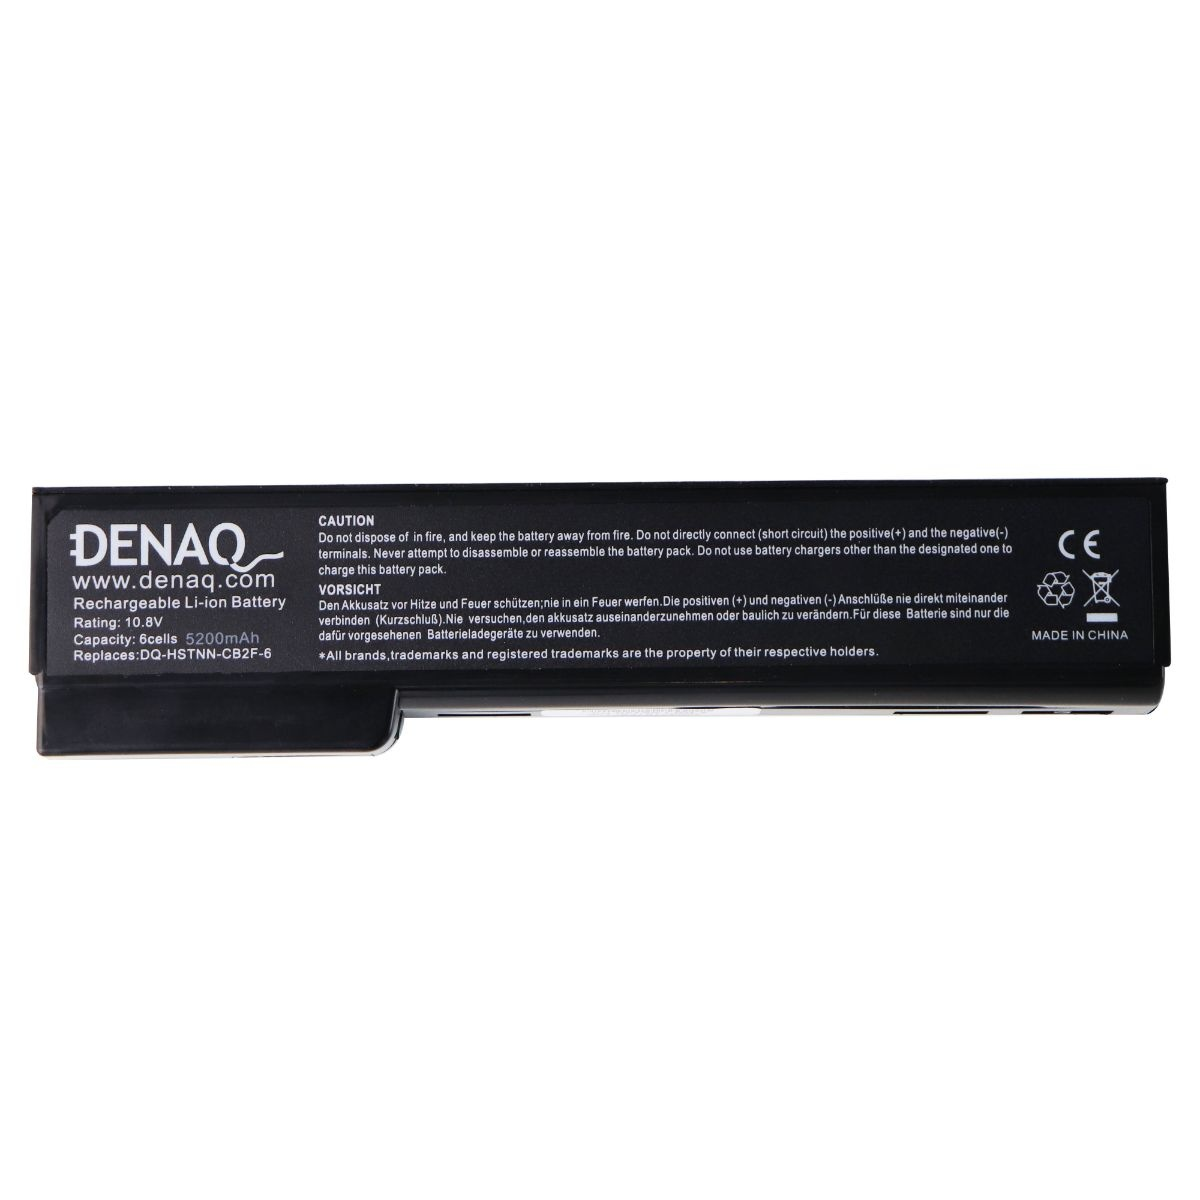 Denaq 6-Cell Li-Ion 5200 mAh Battery for Select HP Laptops (DQ-HSTNN-CB2F-6)